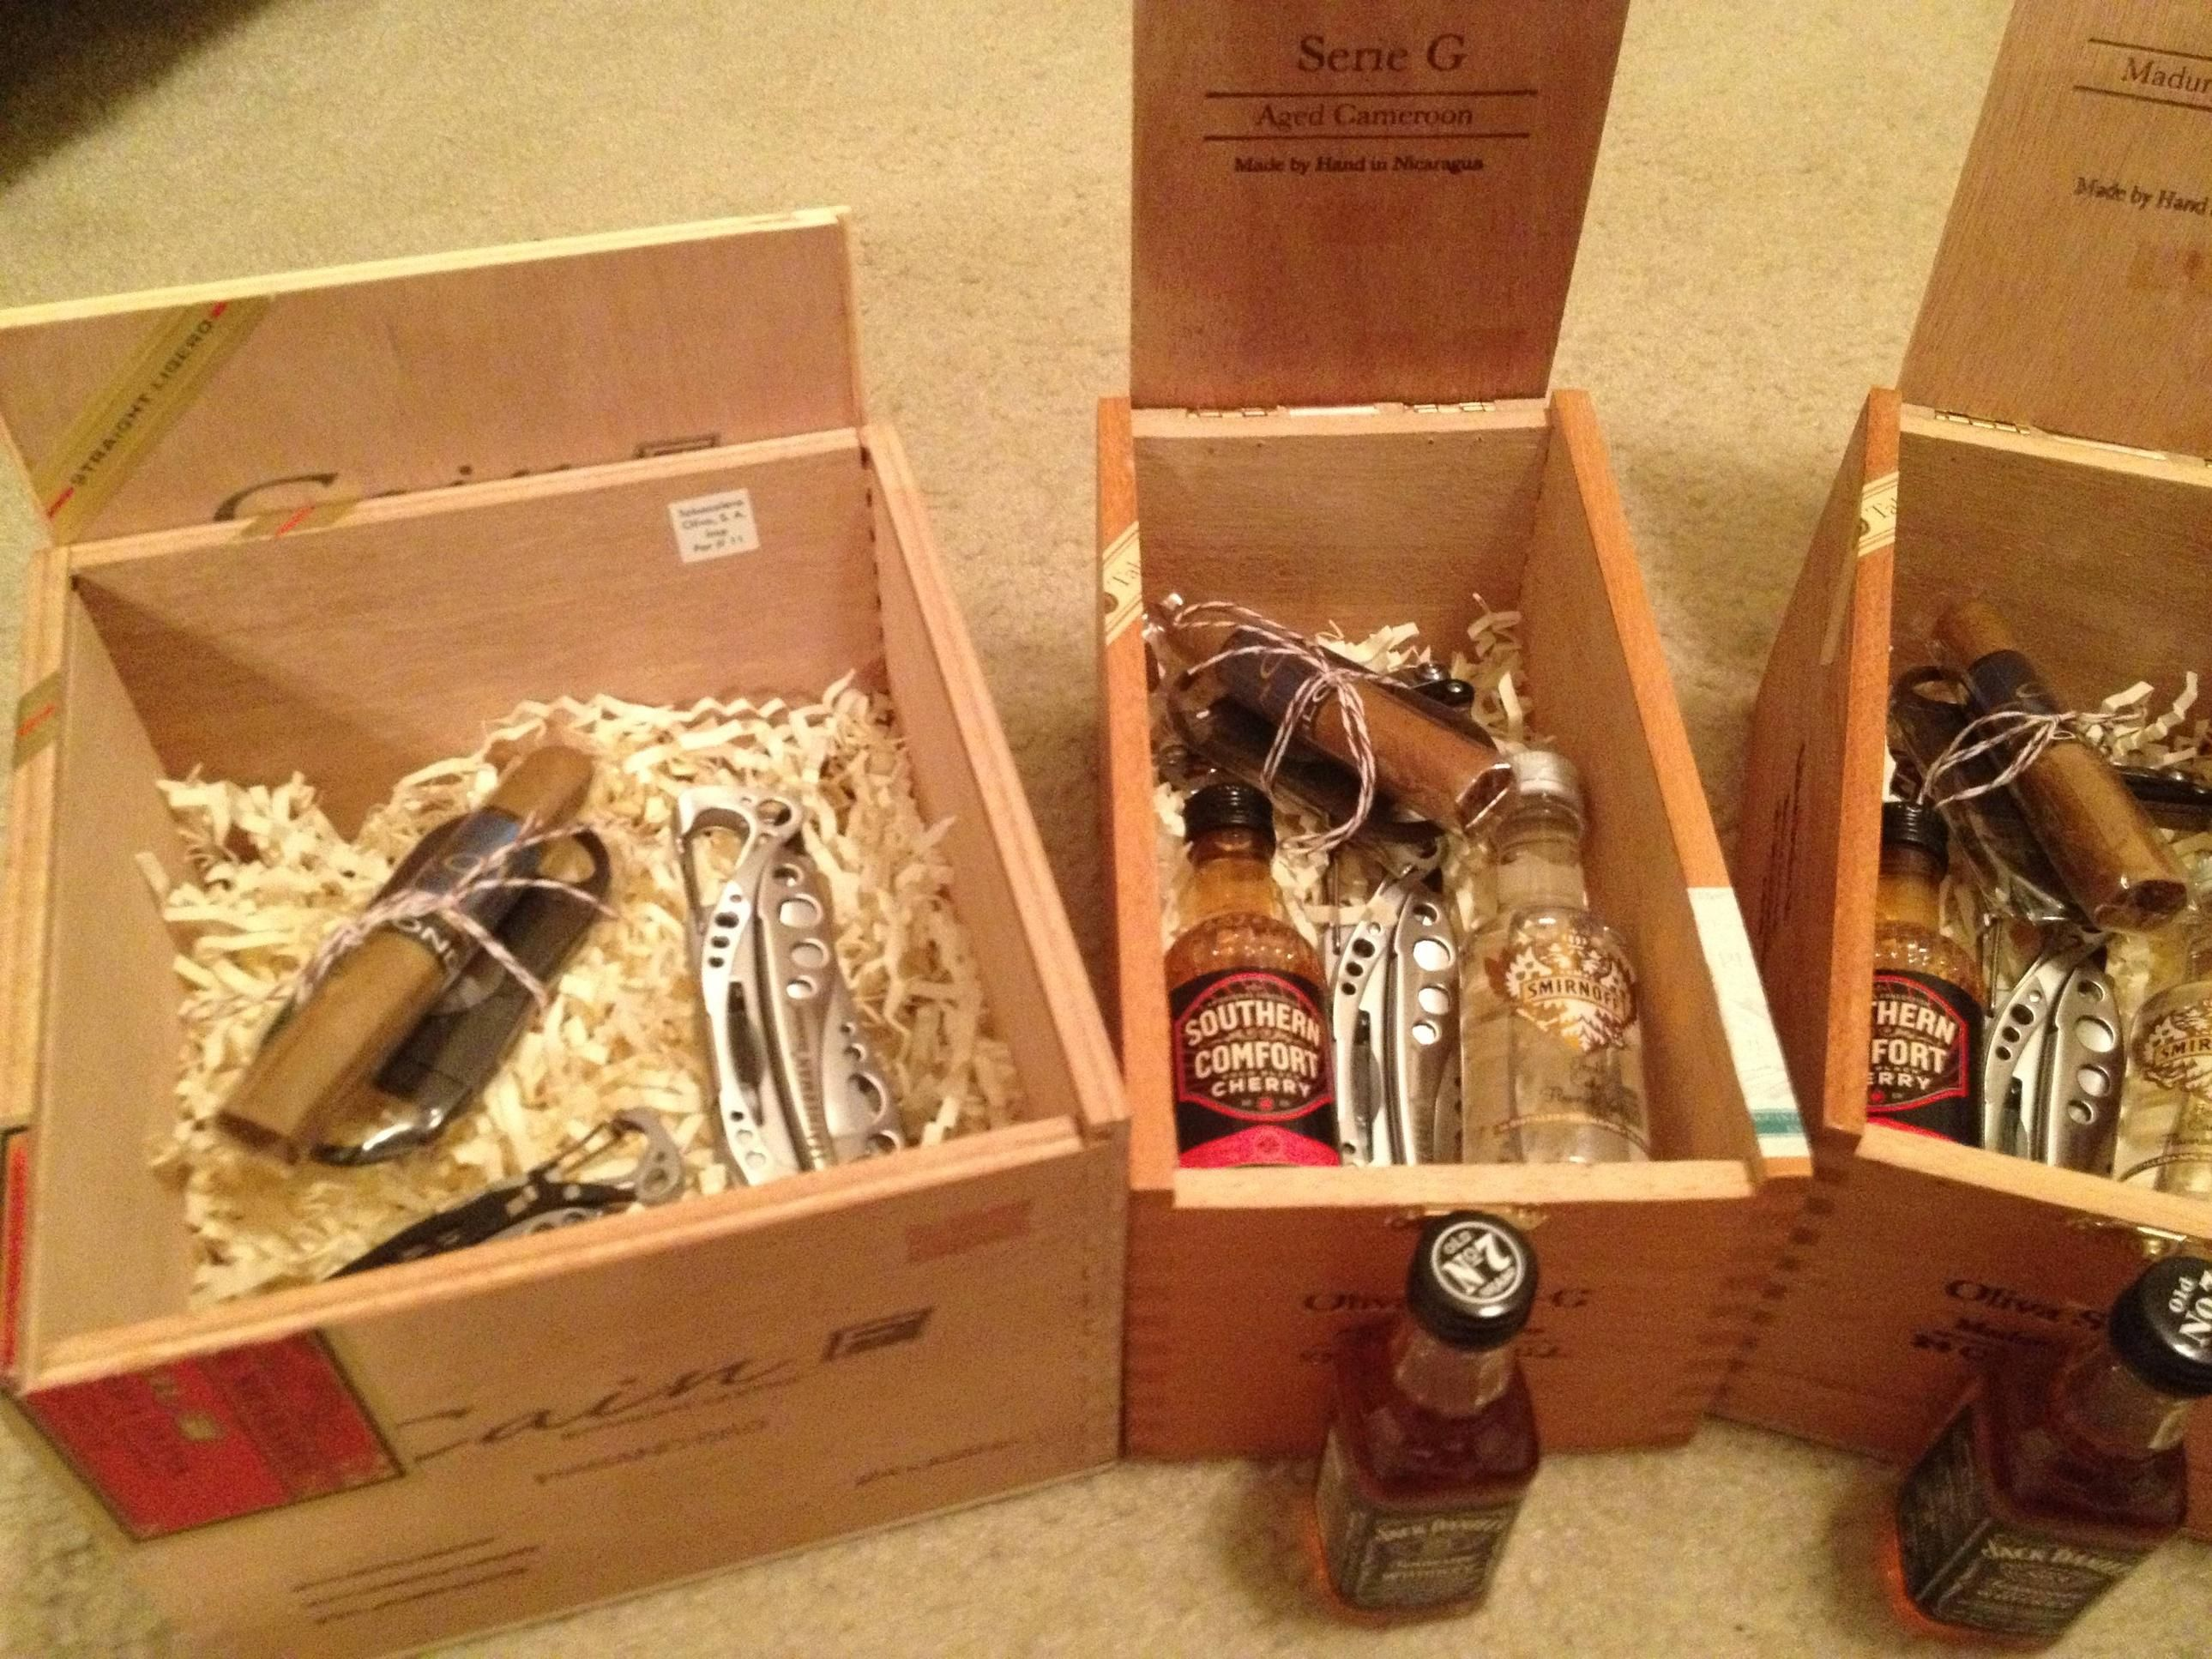 Wedding Party Gift Ideas Groomsmen: Groomsmen Gifts These Are Awesome! I Like The Combo Of The